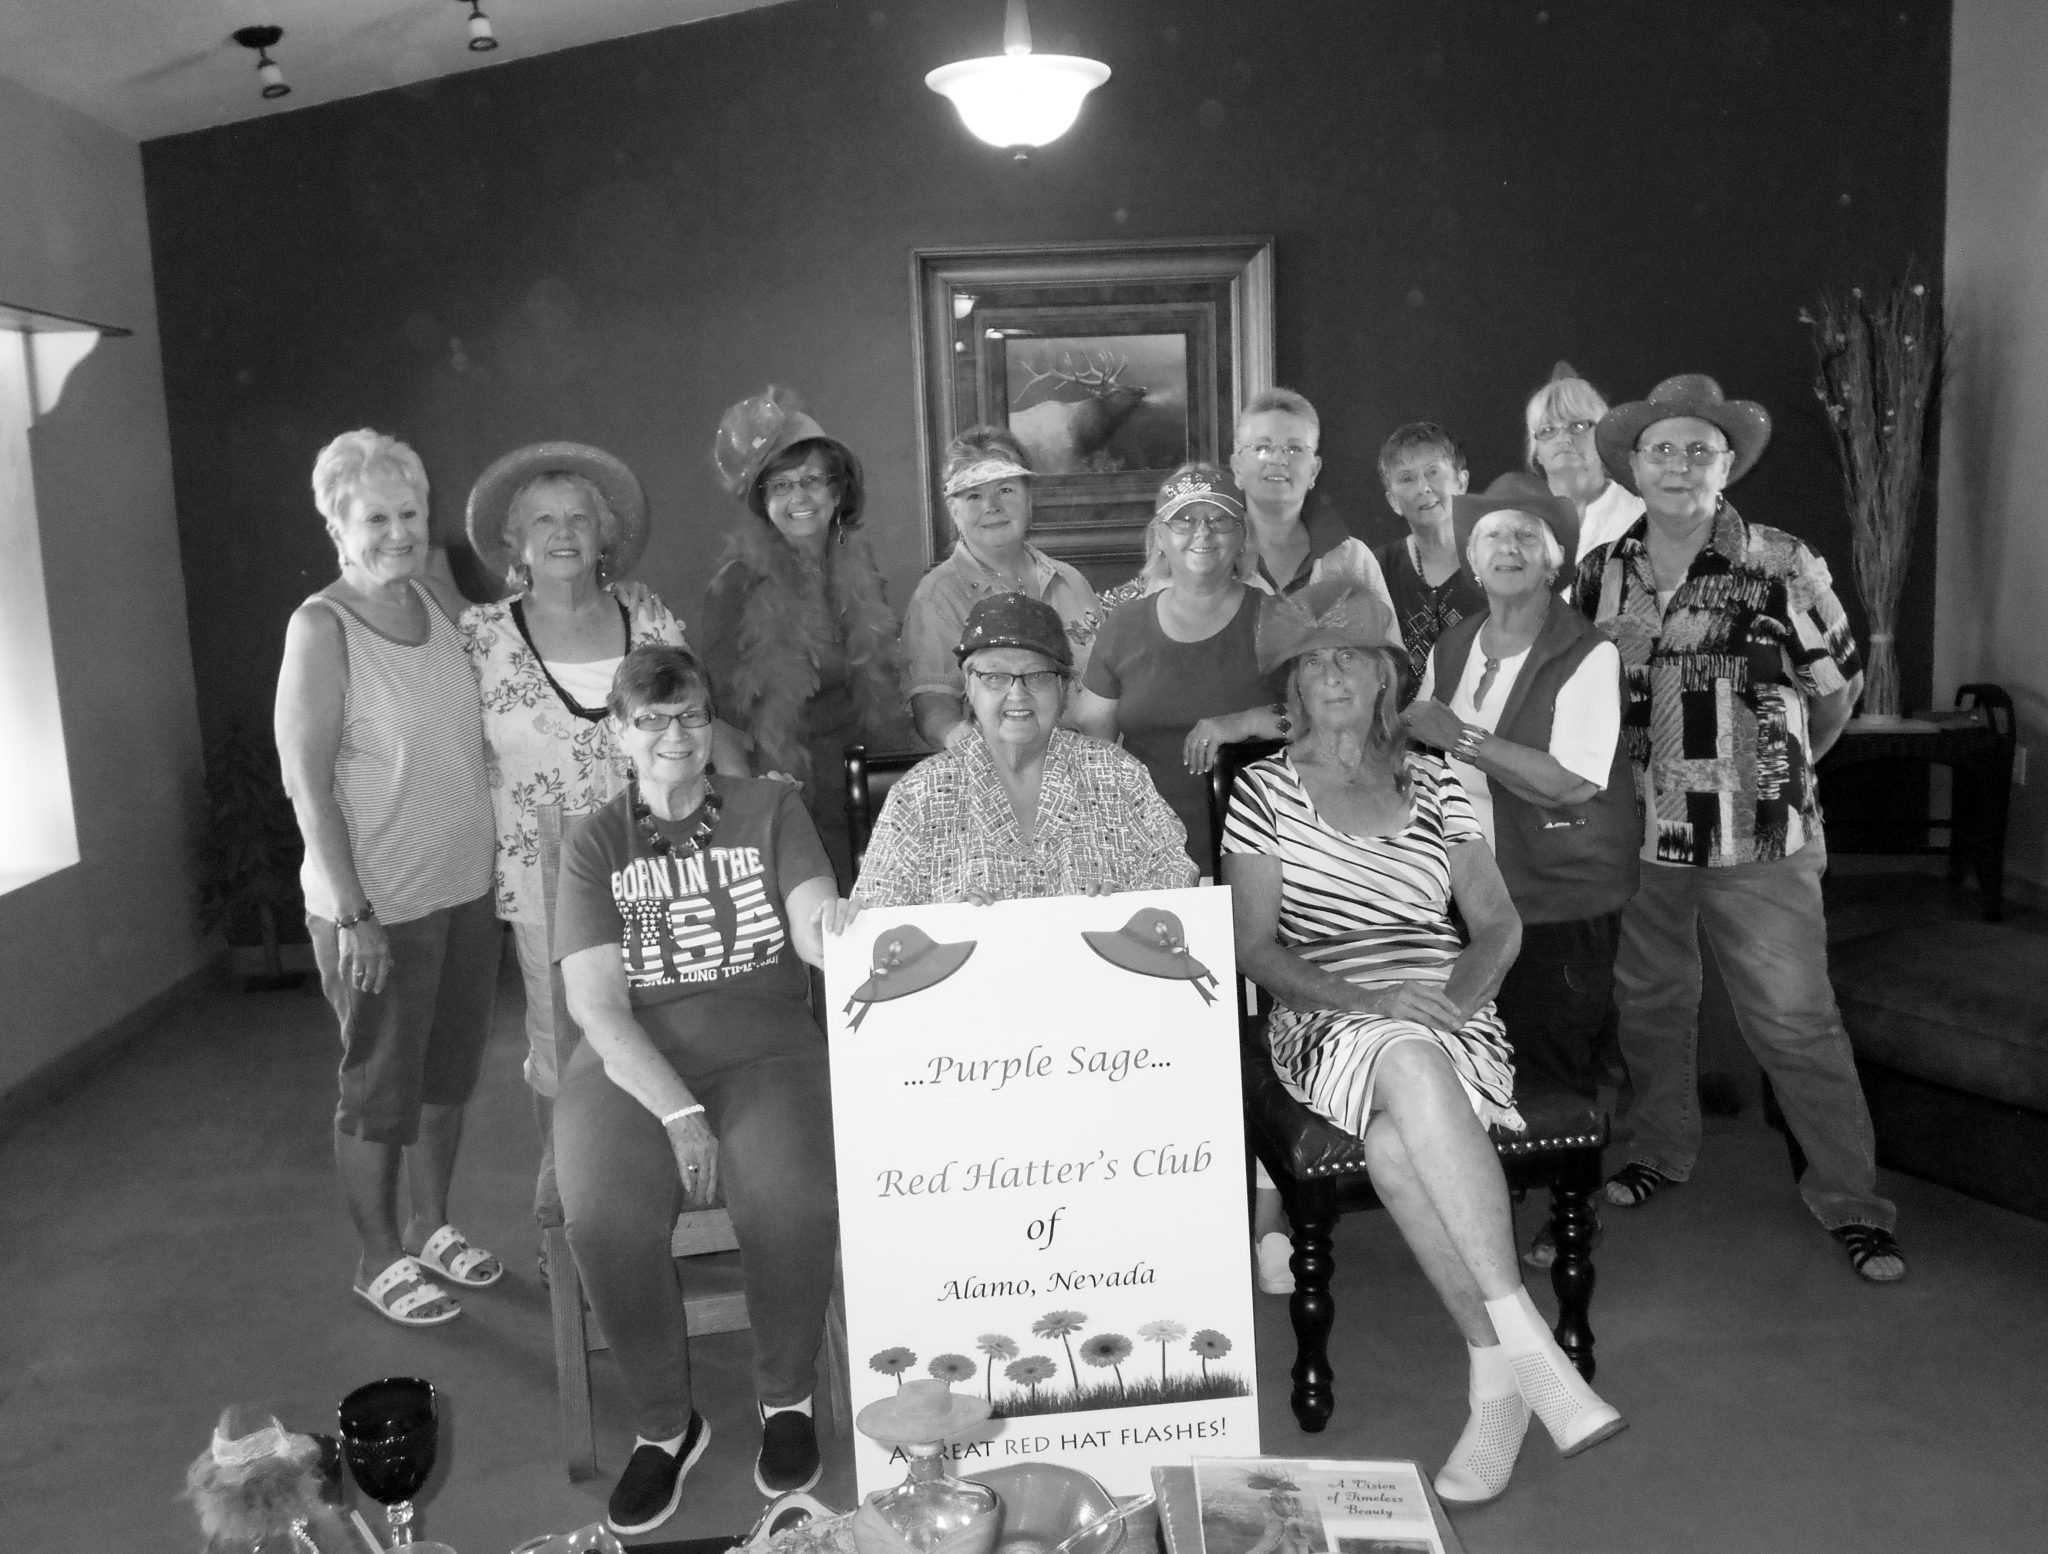 Local Red Hatter's club enjoy events, meetings and friendship